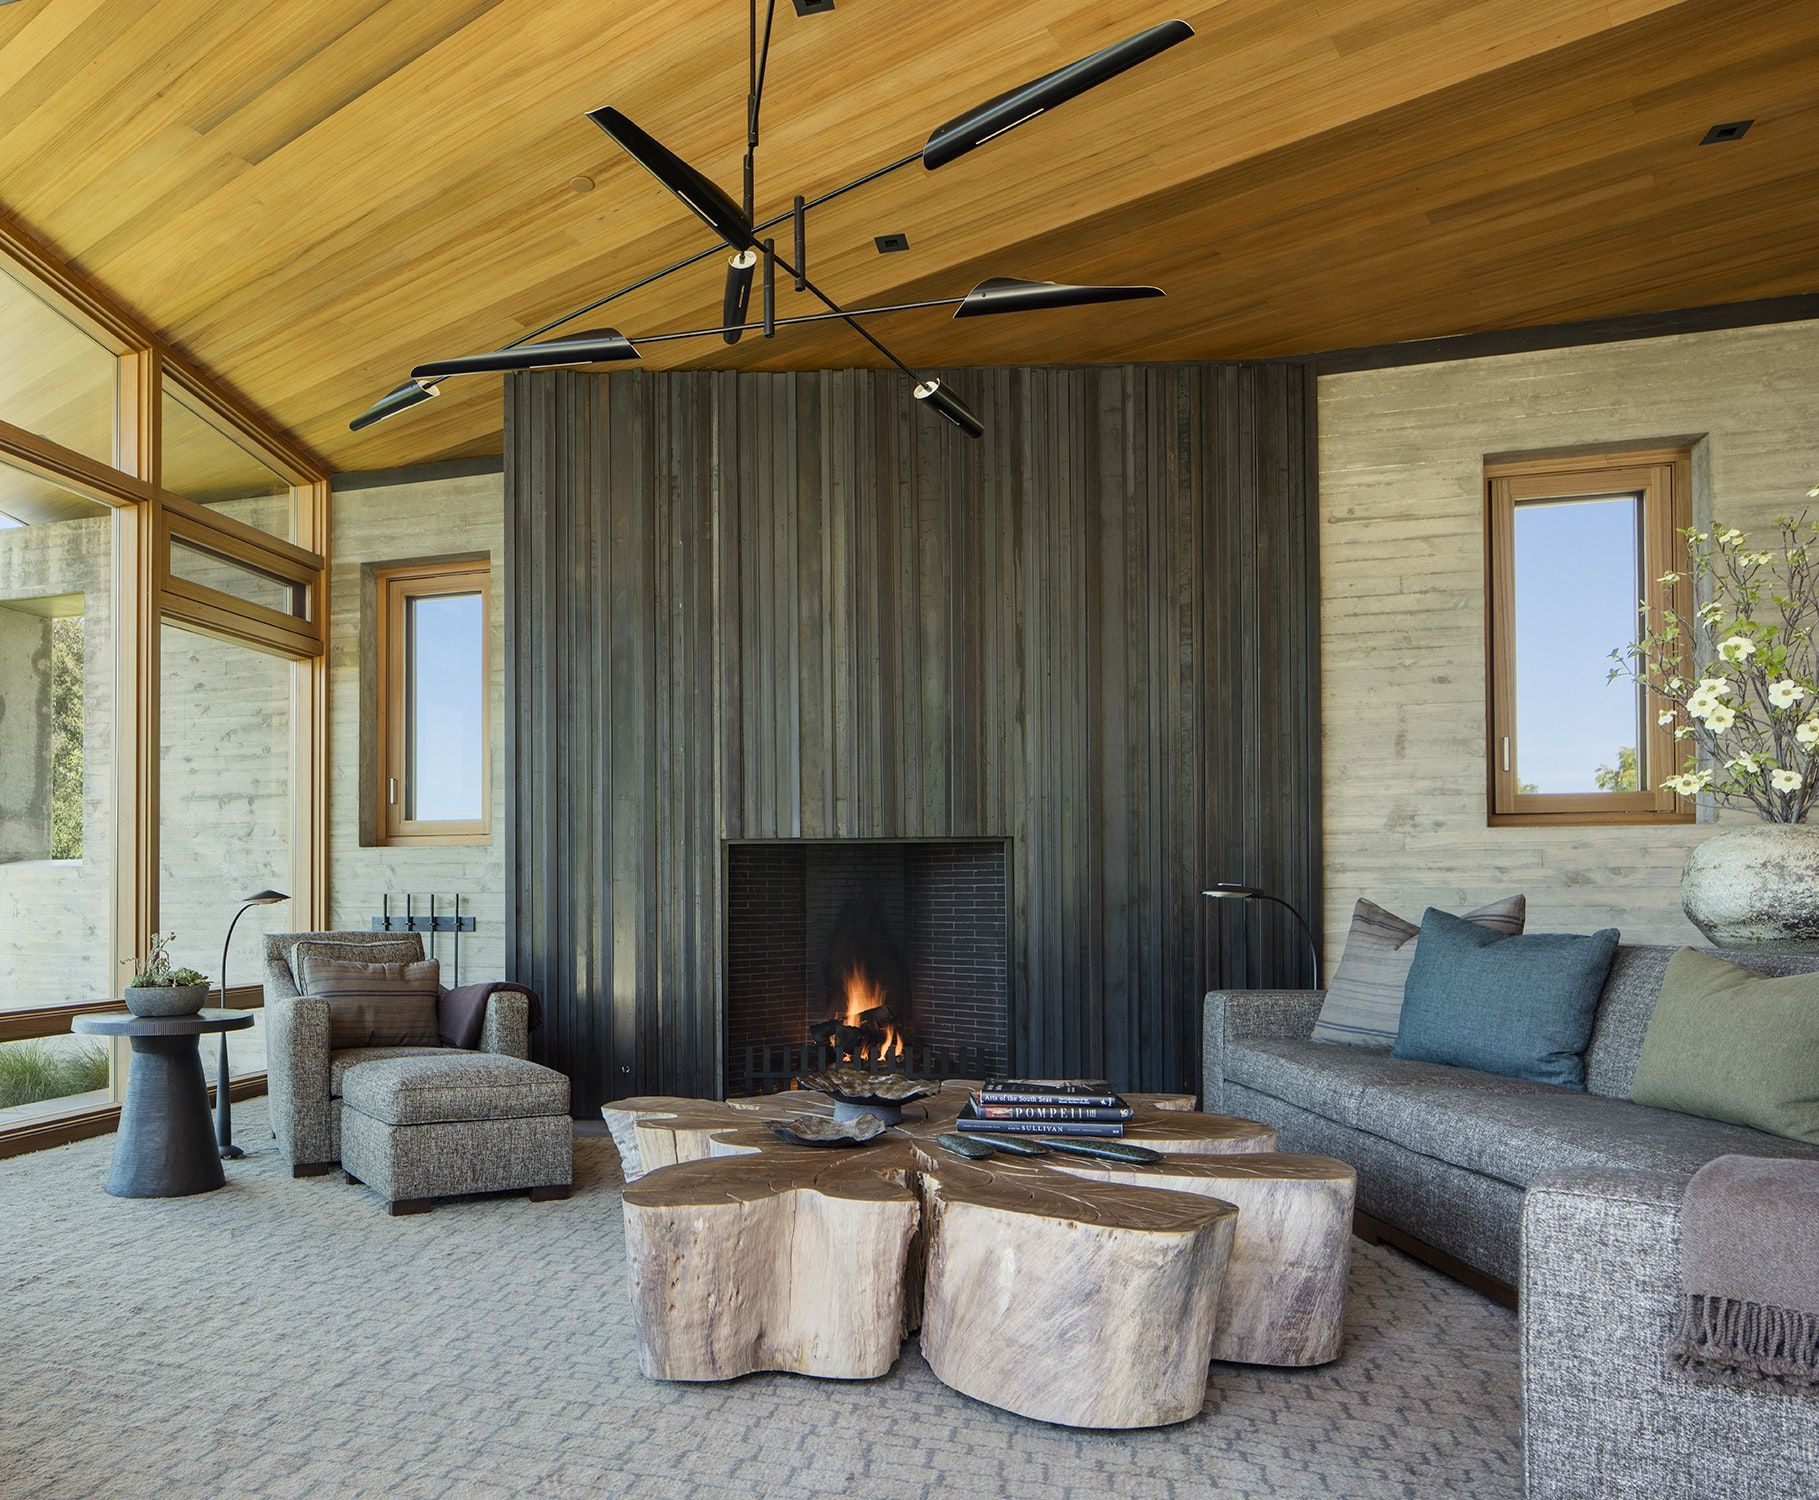 Modern living room concrete and wood grand fireplace eucalyptus coffee table